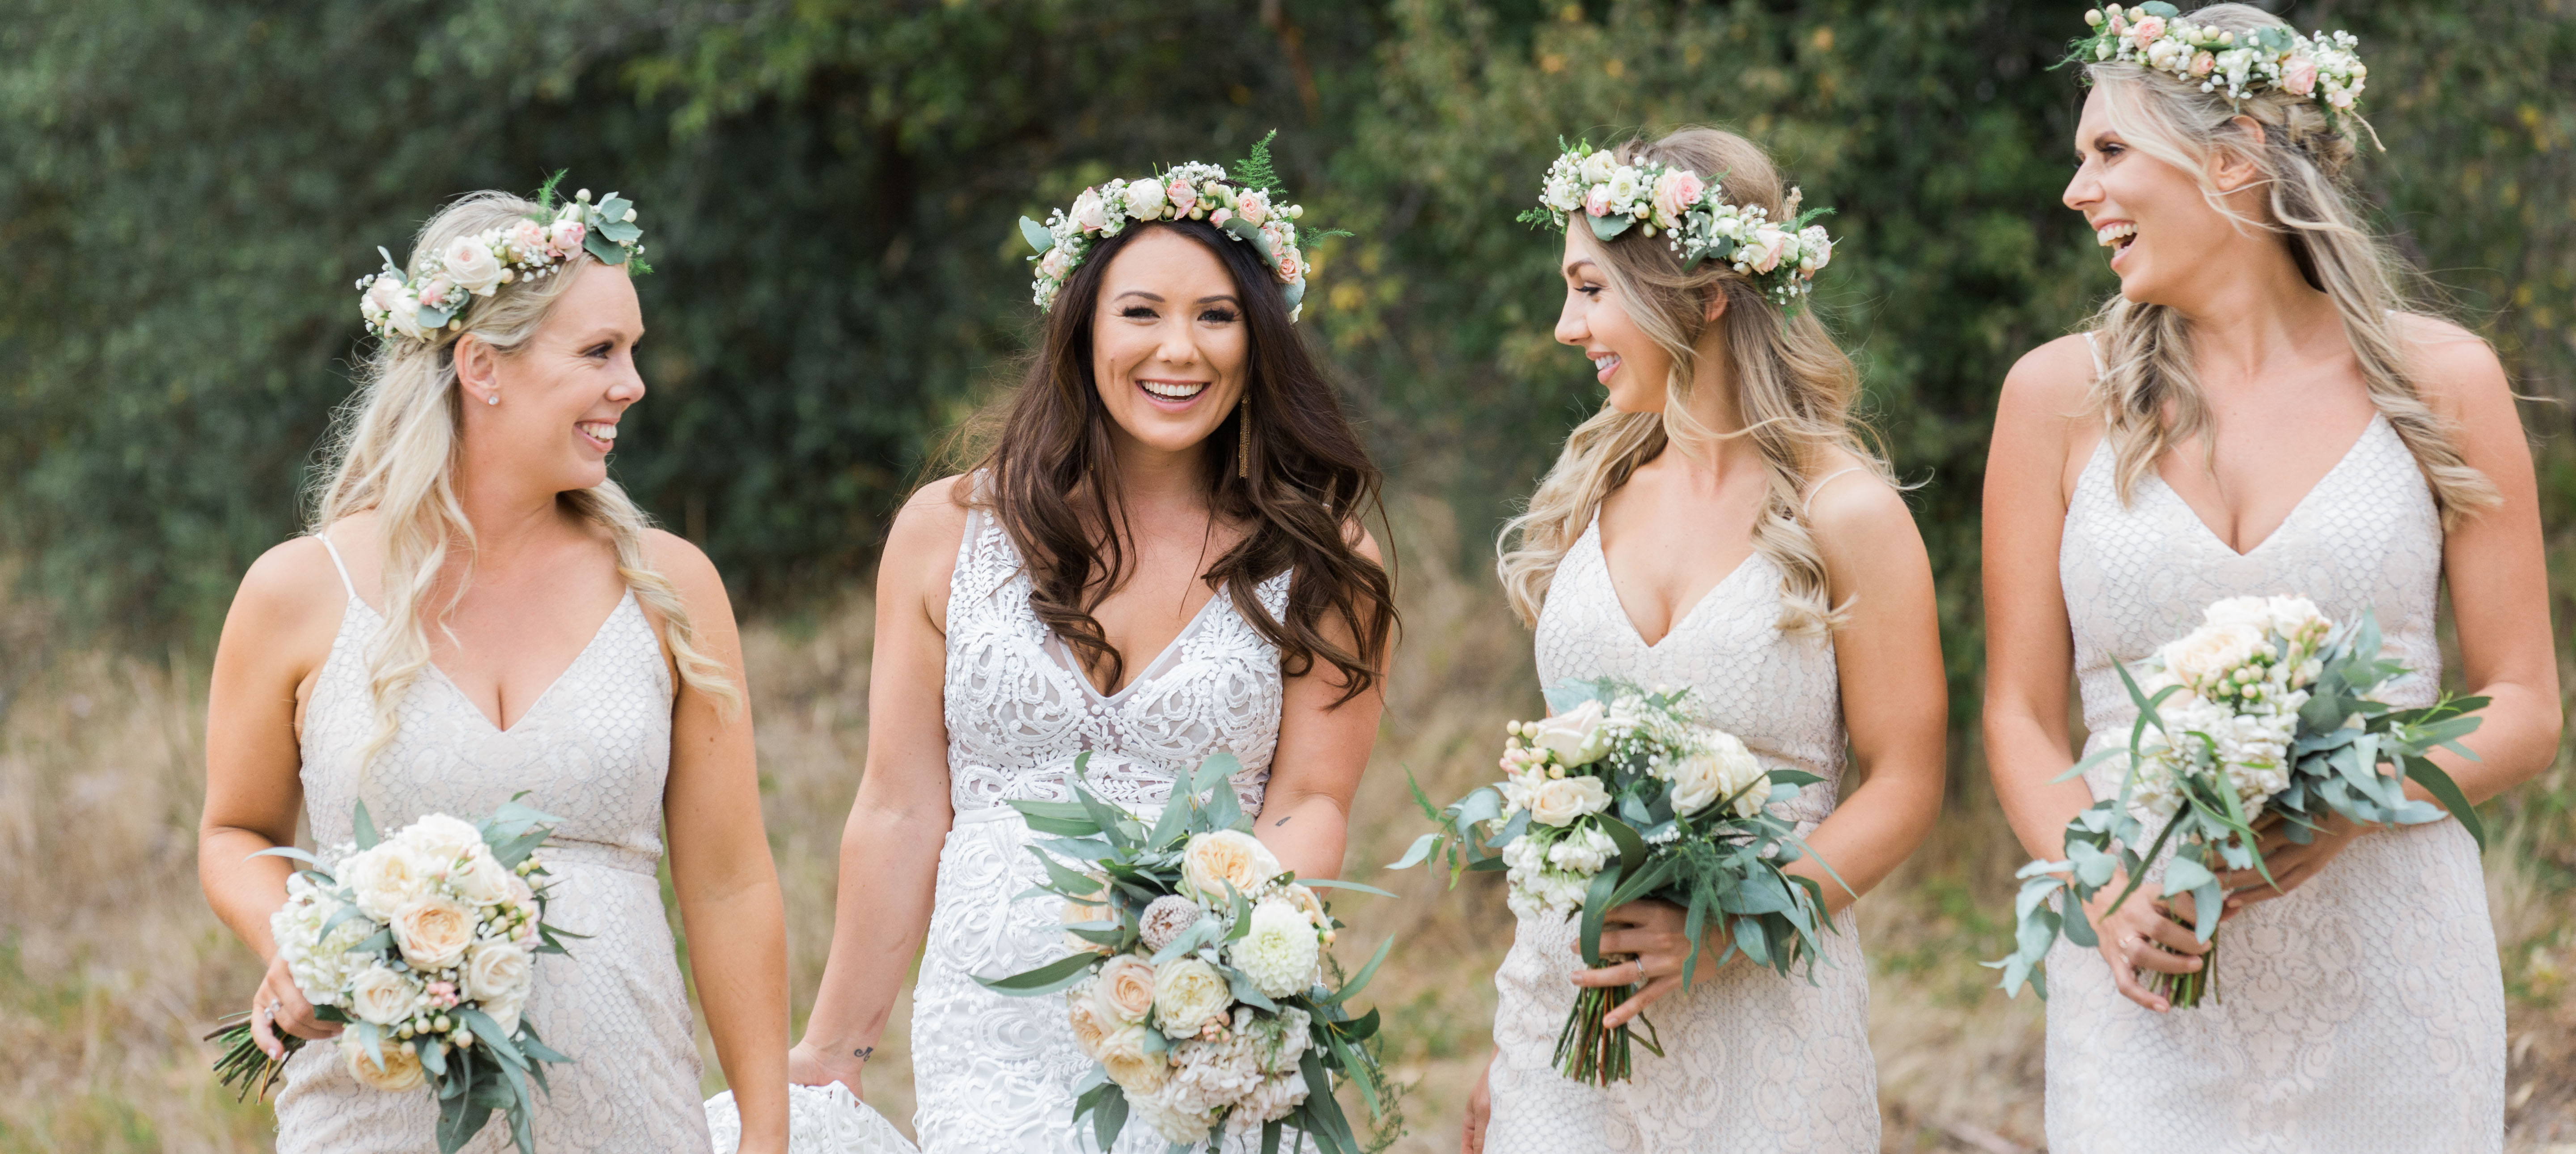 Koko Photography | Bendigo Wedding Photographer